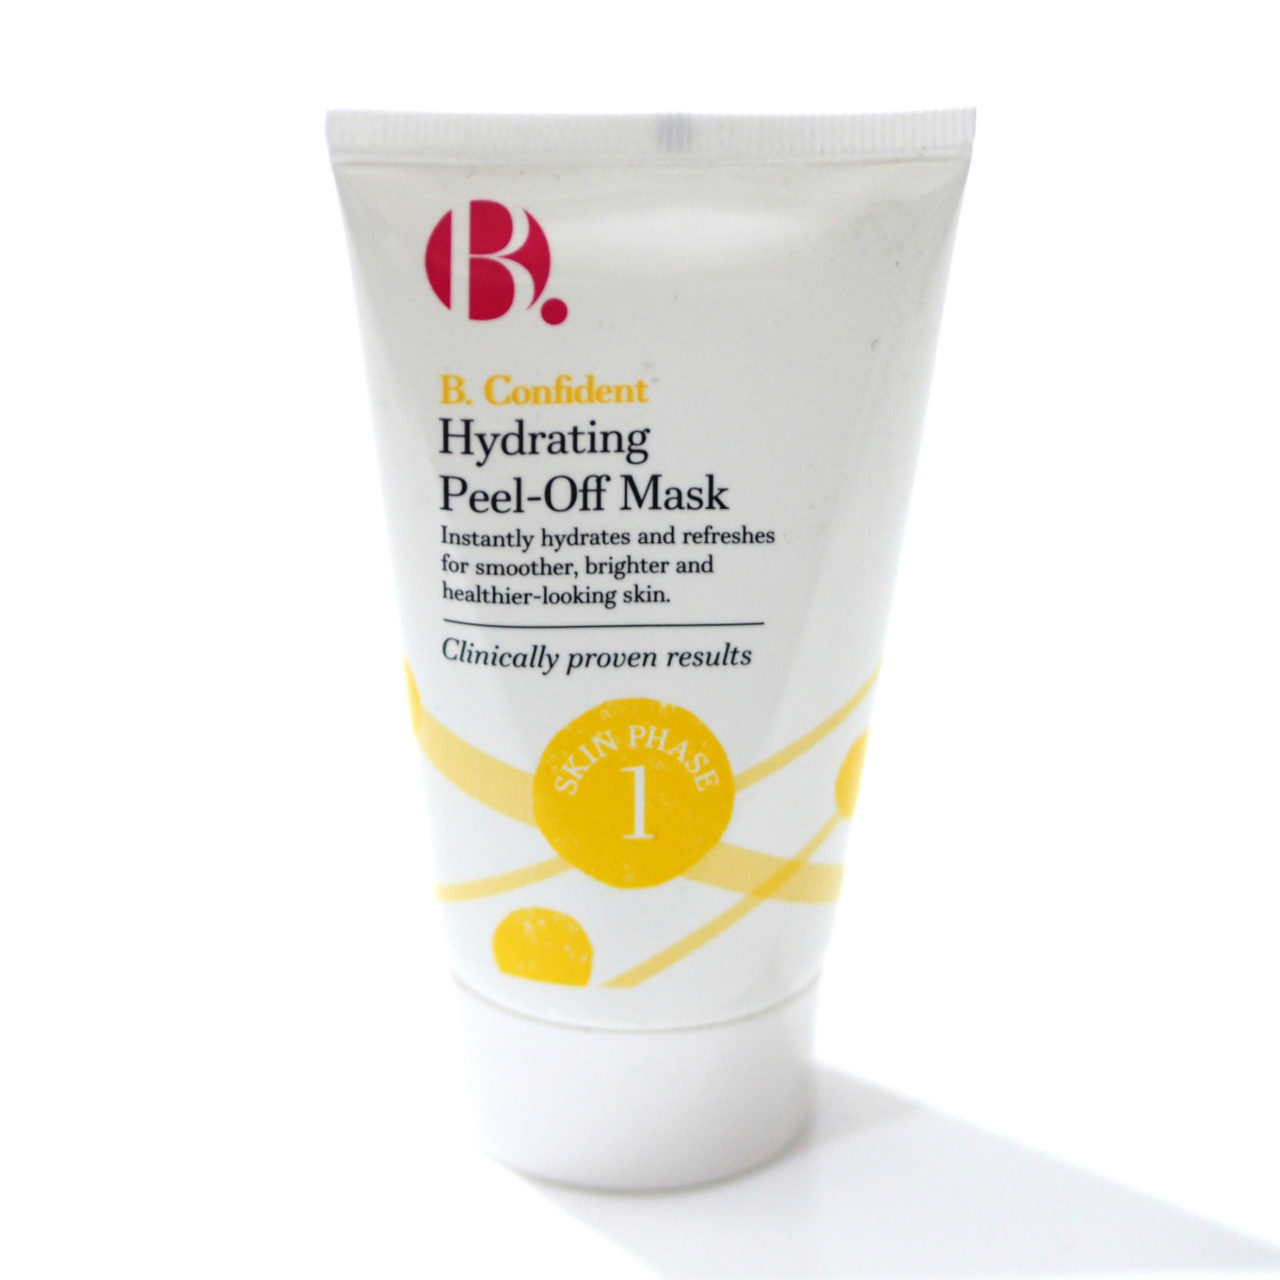 B Confident Hydrating Peel Off Mask Review